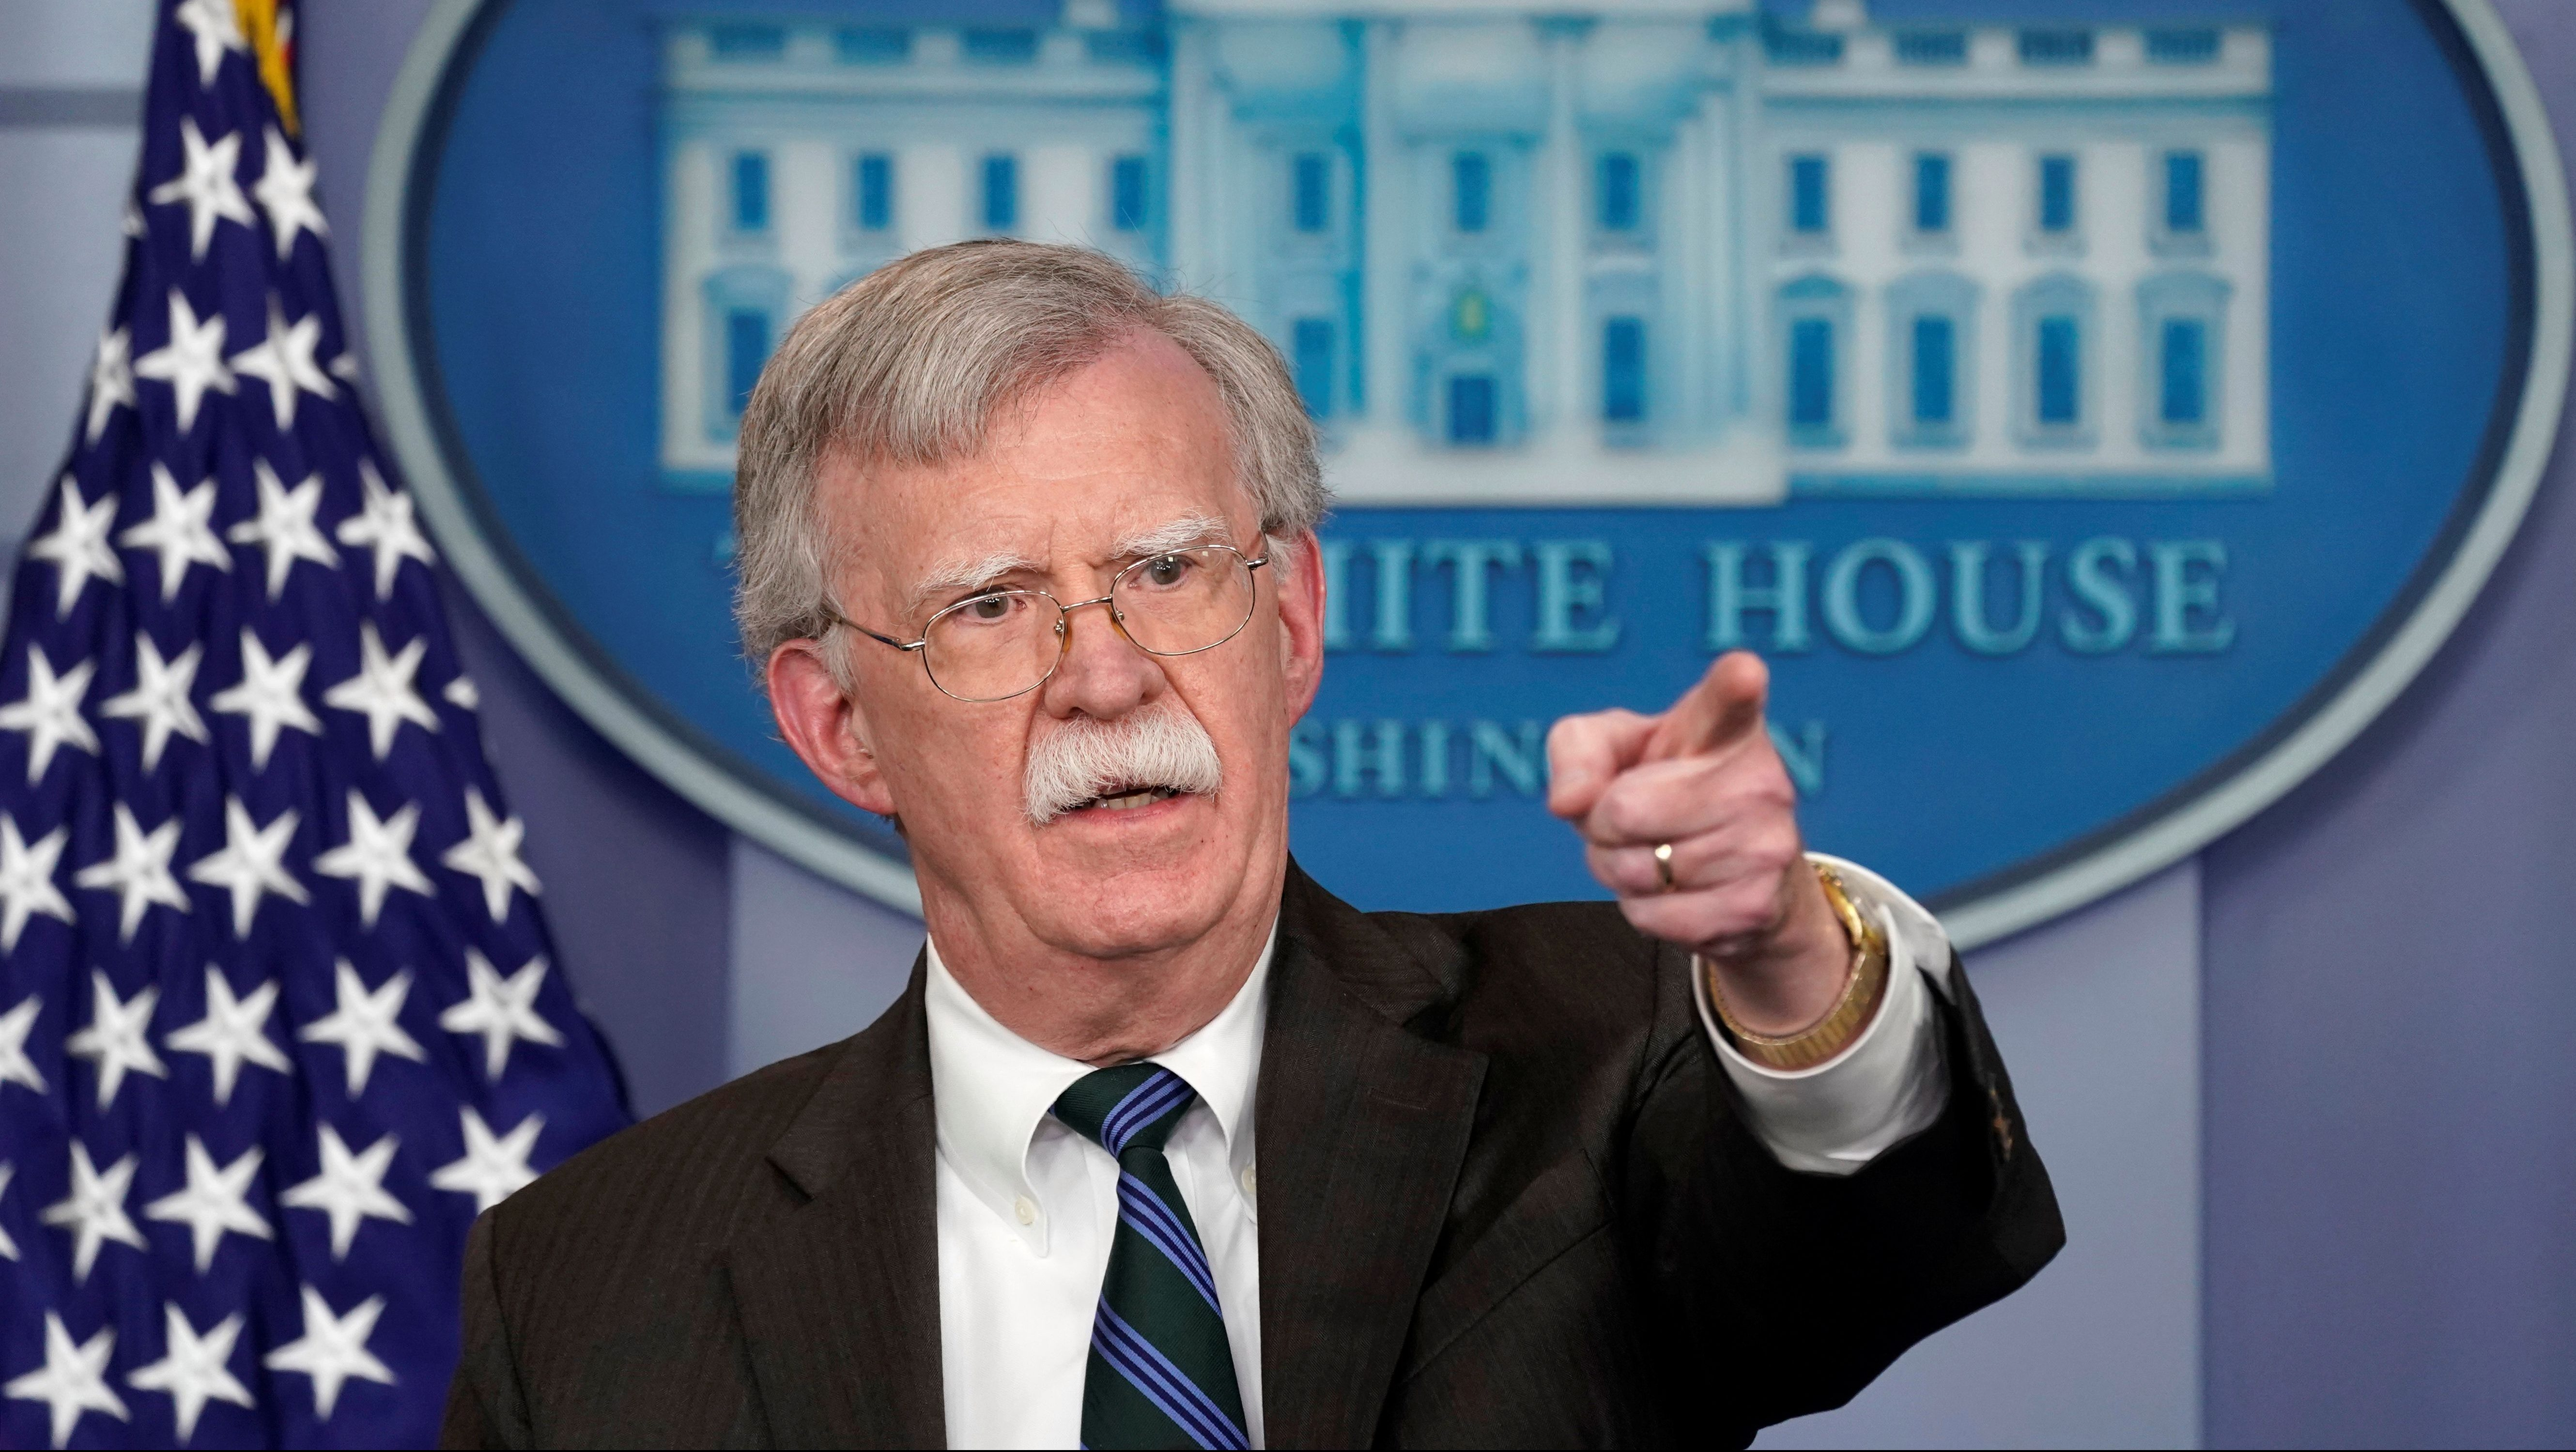 U.S. President Donald Trump's national security adviser John Bolton speaks during a press briefing at the White House in Washington, U.S., November 27, 2018.